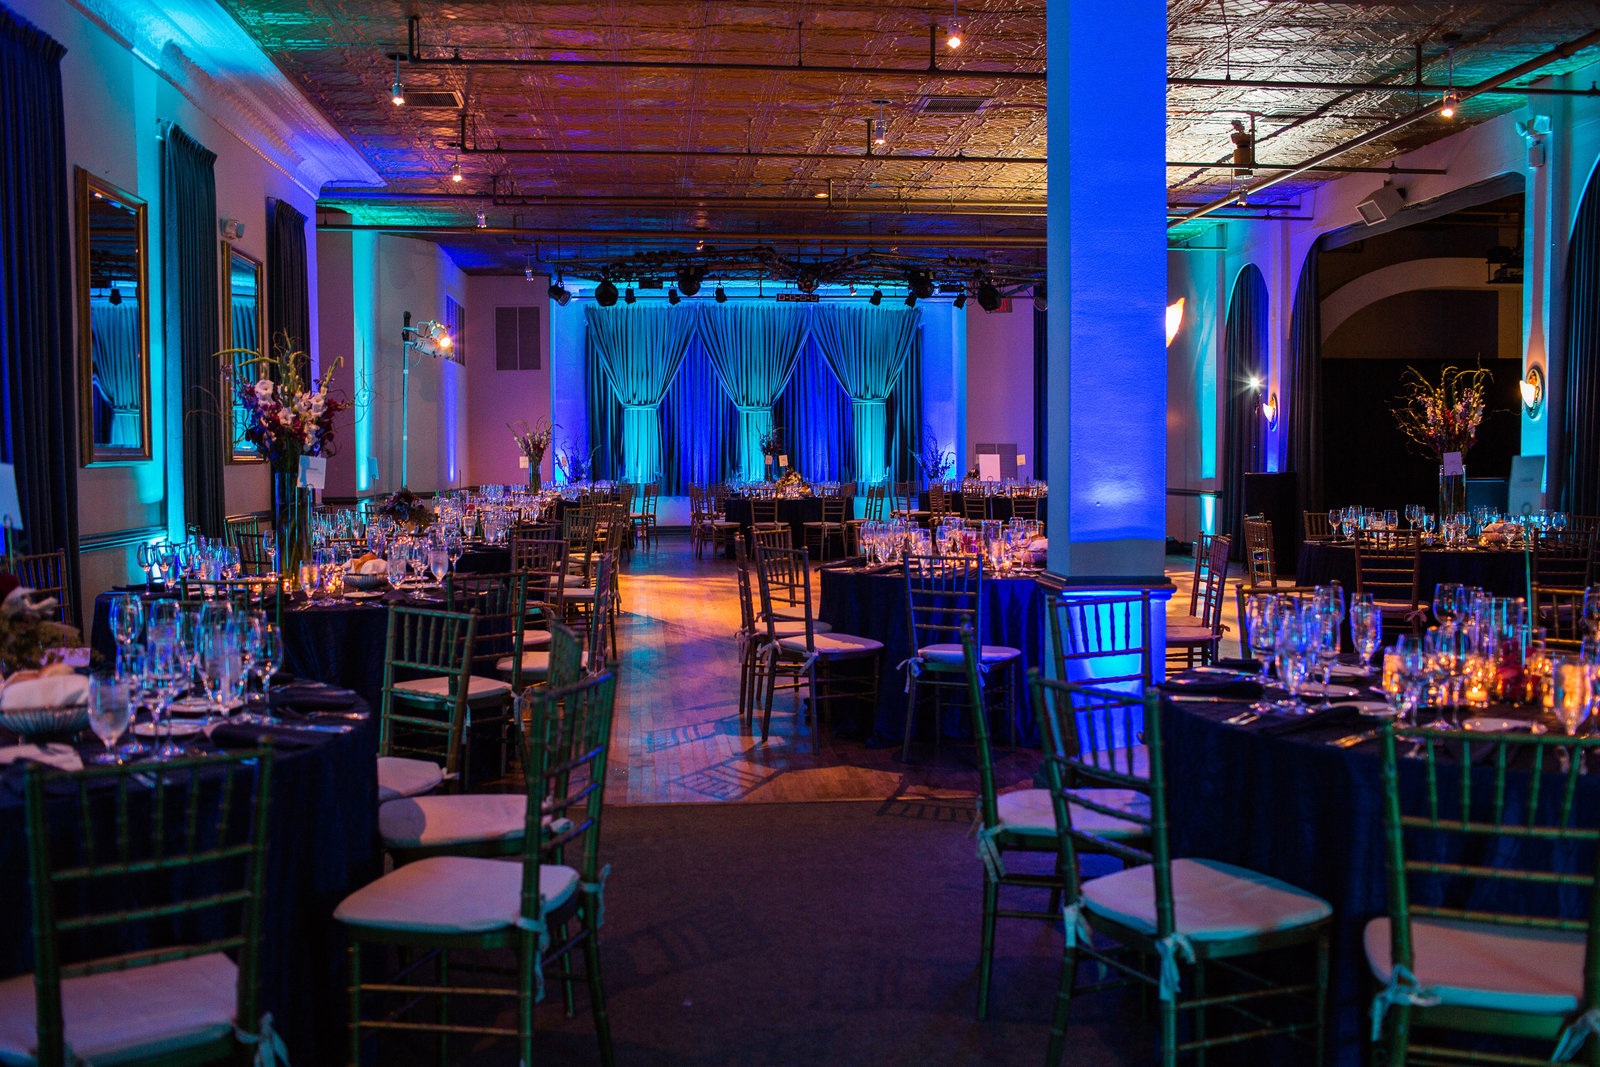 Clarendon Ballroom Wedding Reception with lighting